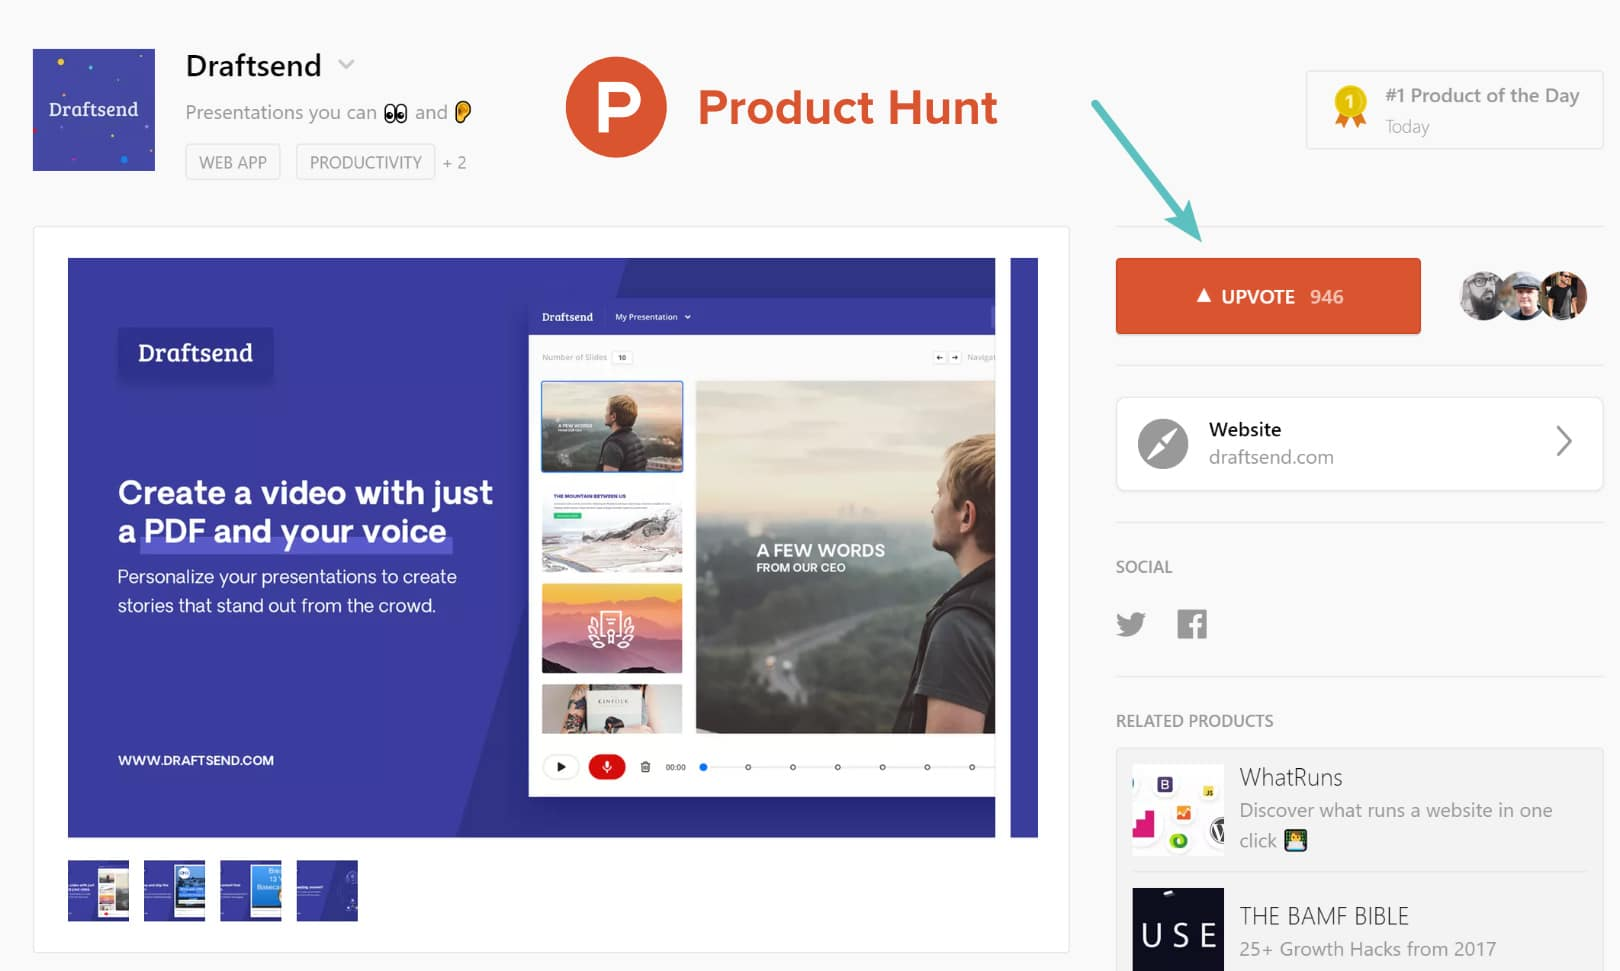 Launching product on Product Hunt